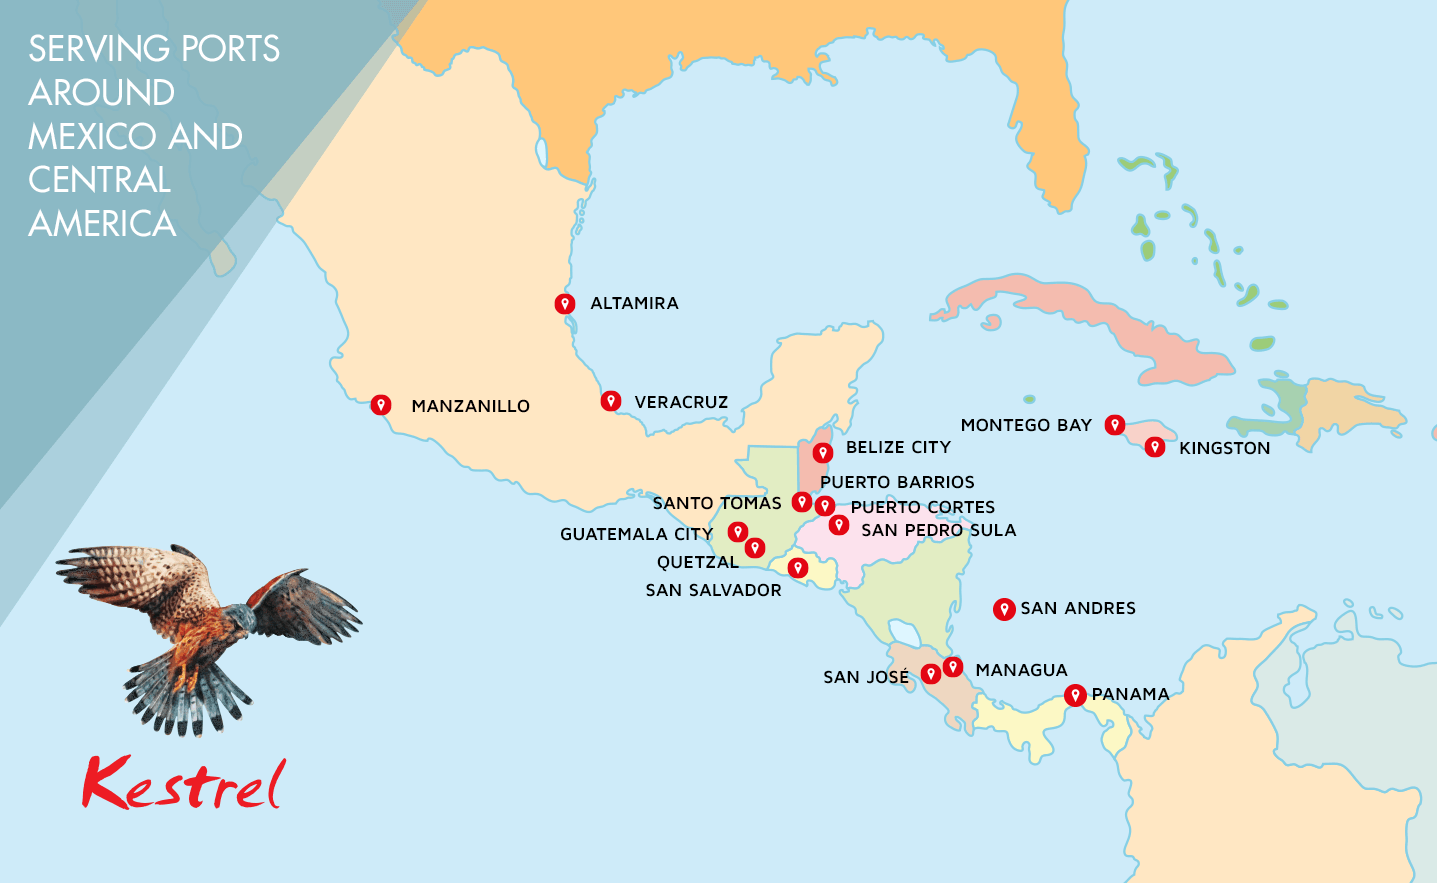 map showing locations of mexican central america ports served by kestrel caribbean shipping services